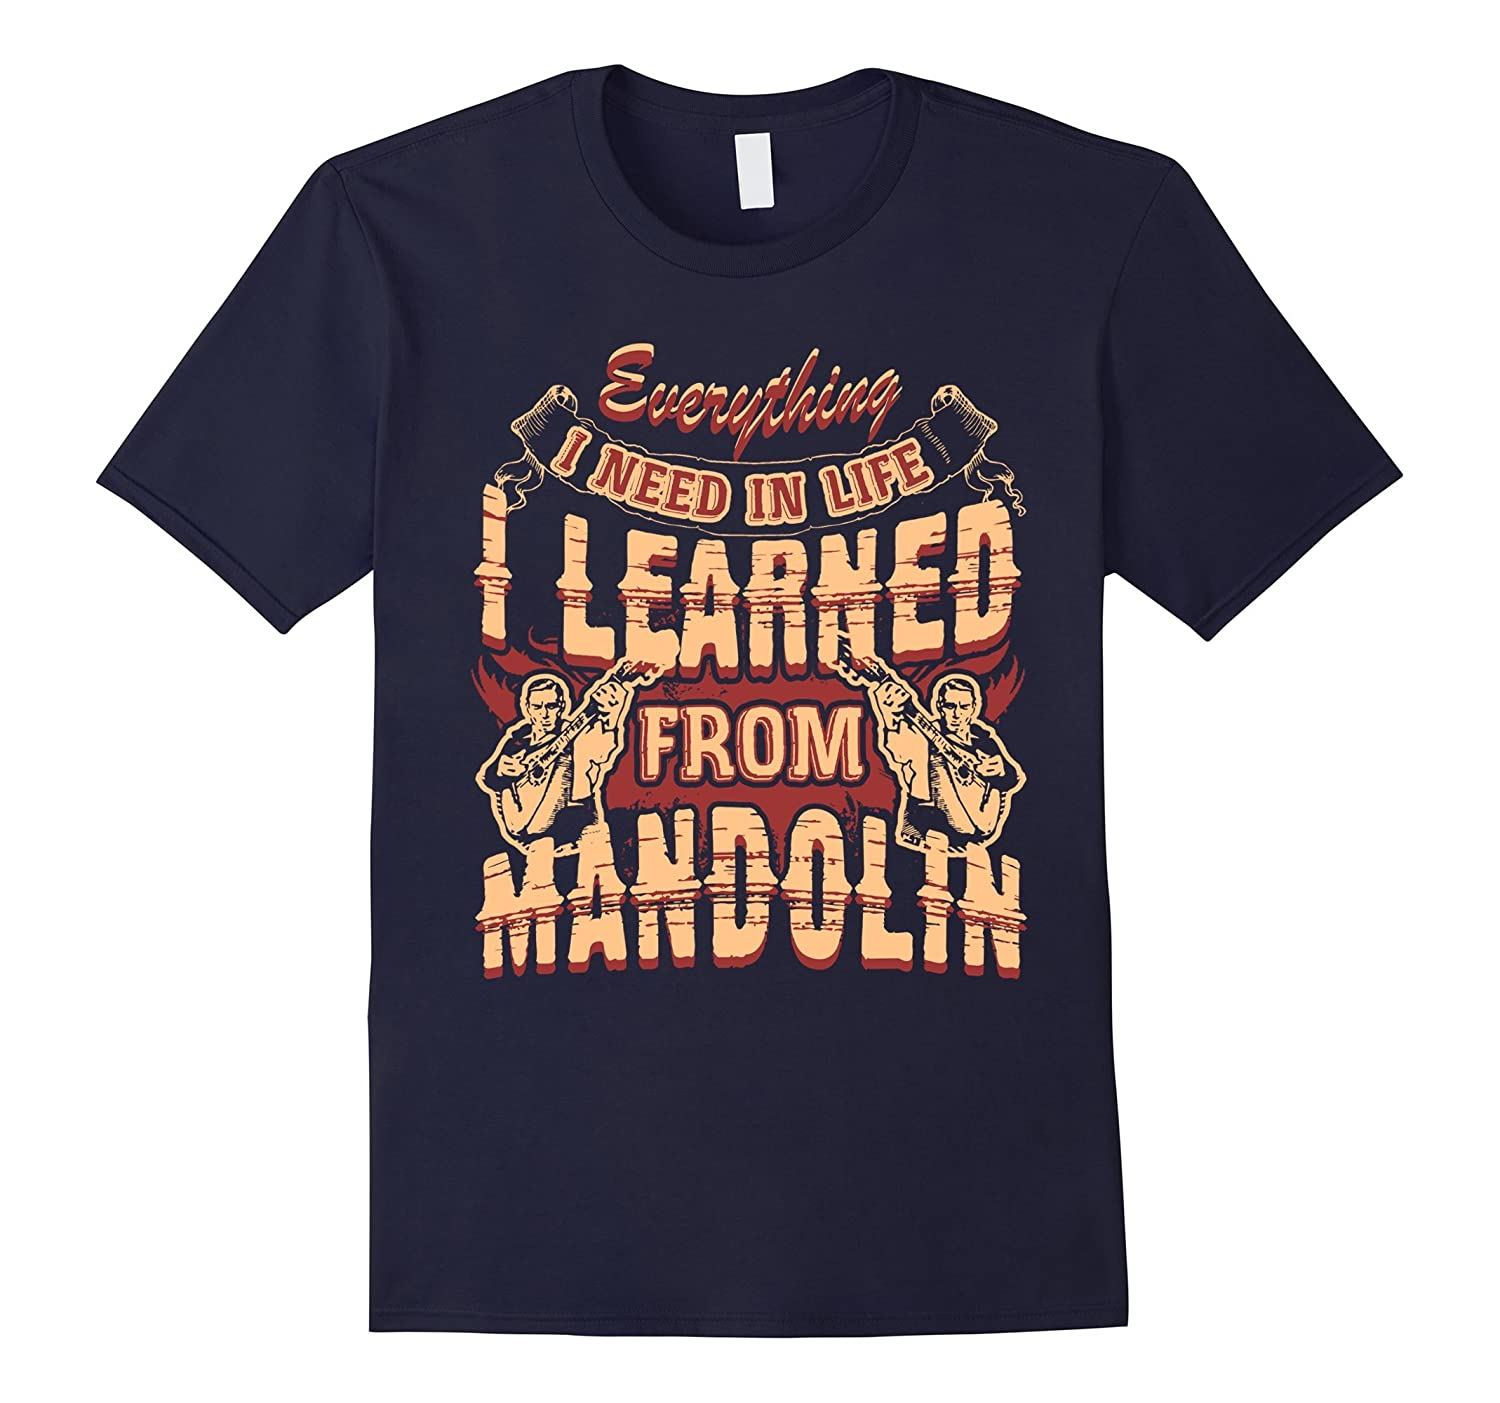 Mandolin Shirt - Learned From Mandolin Tshirt-Vaci